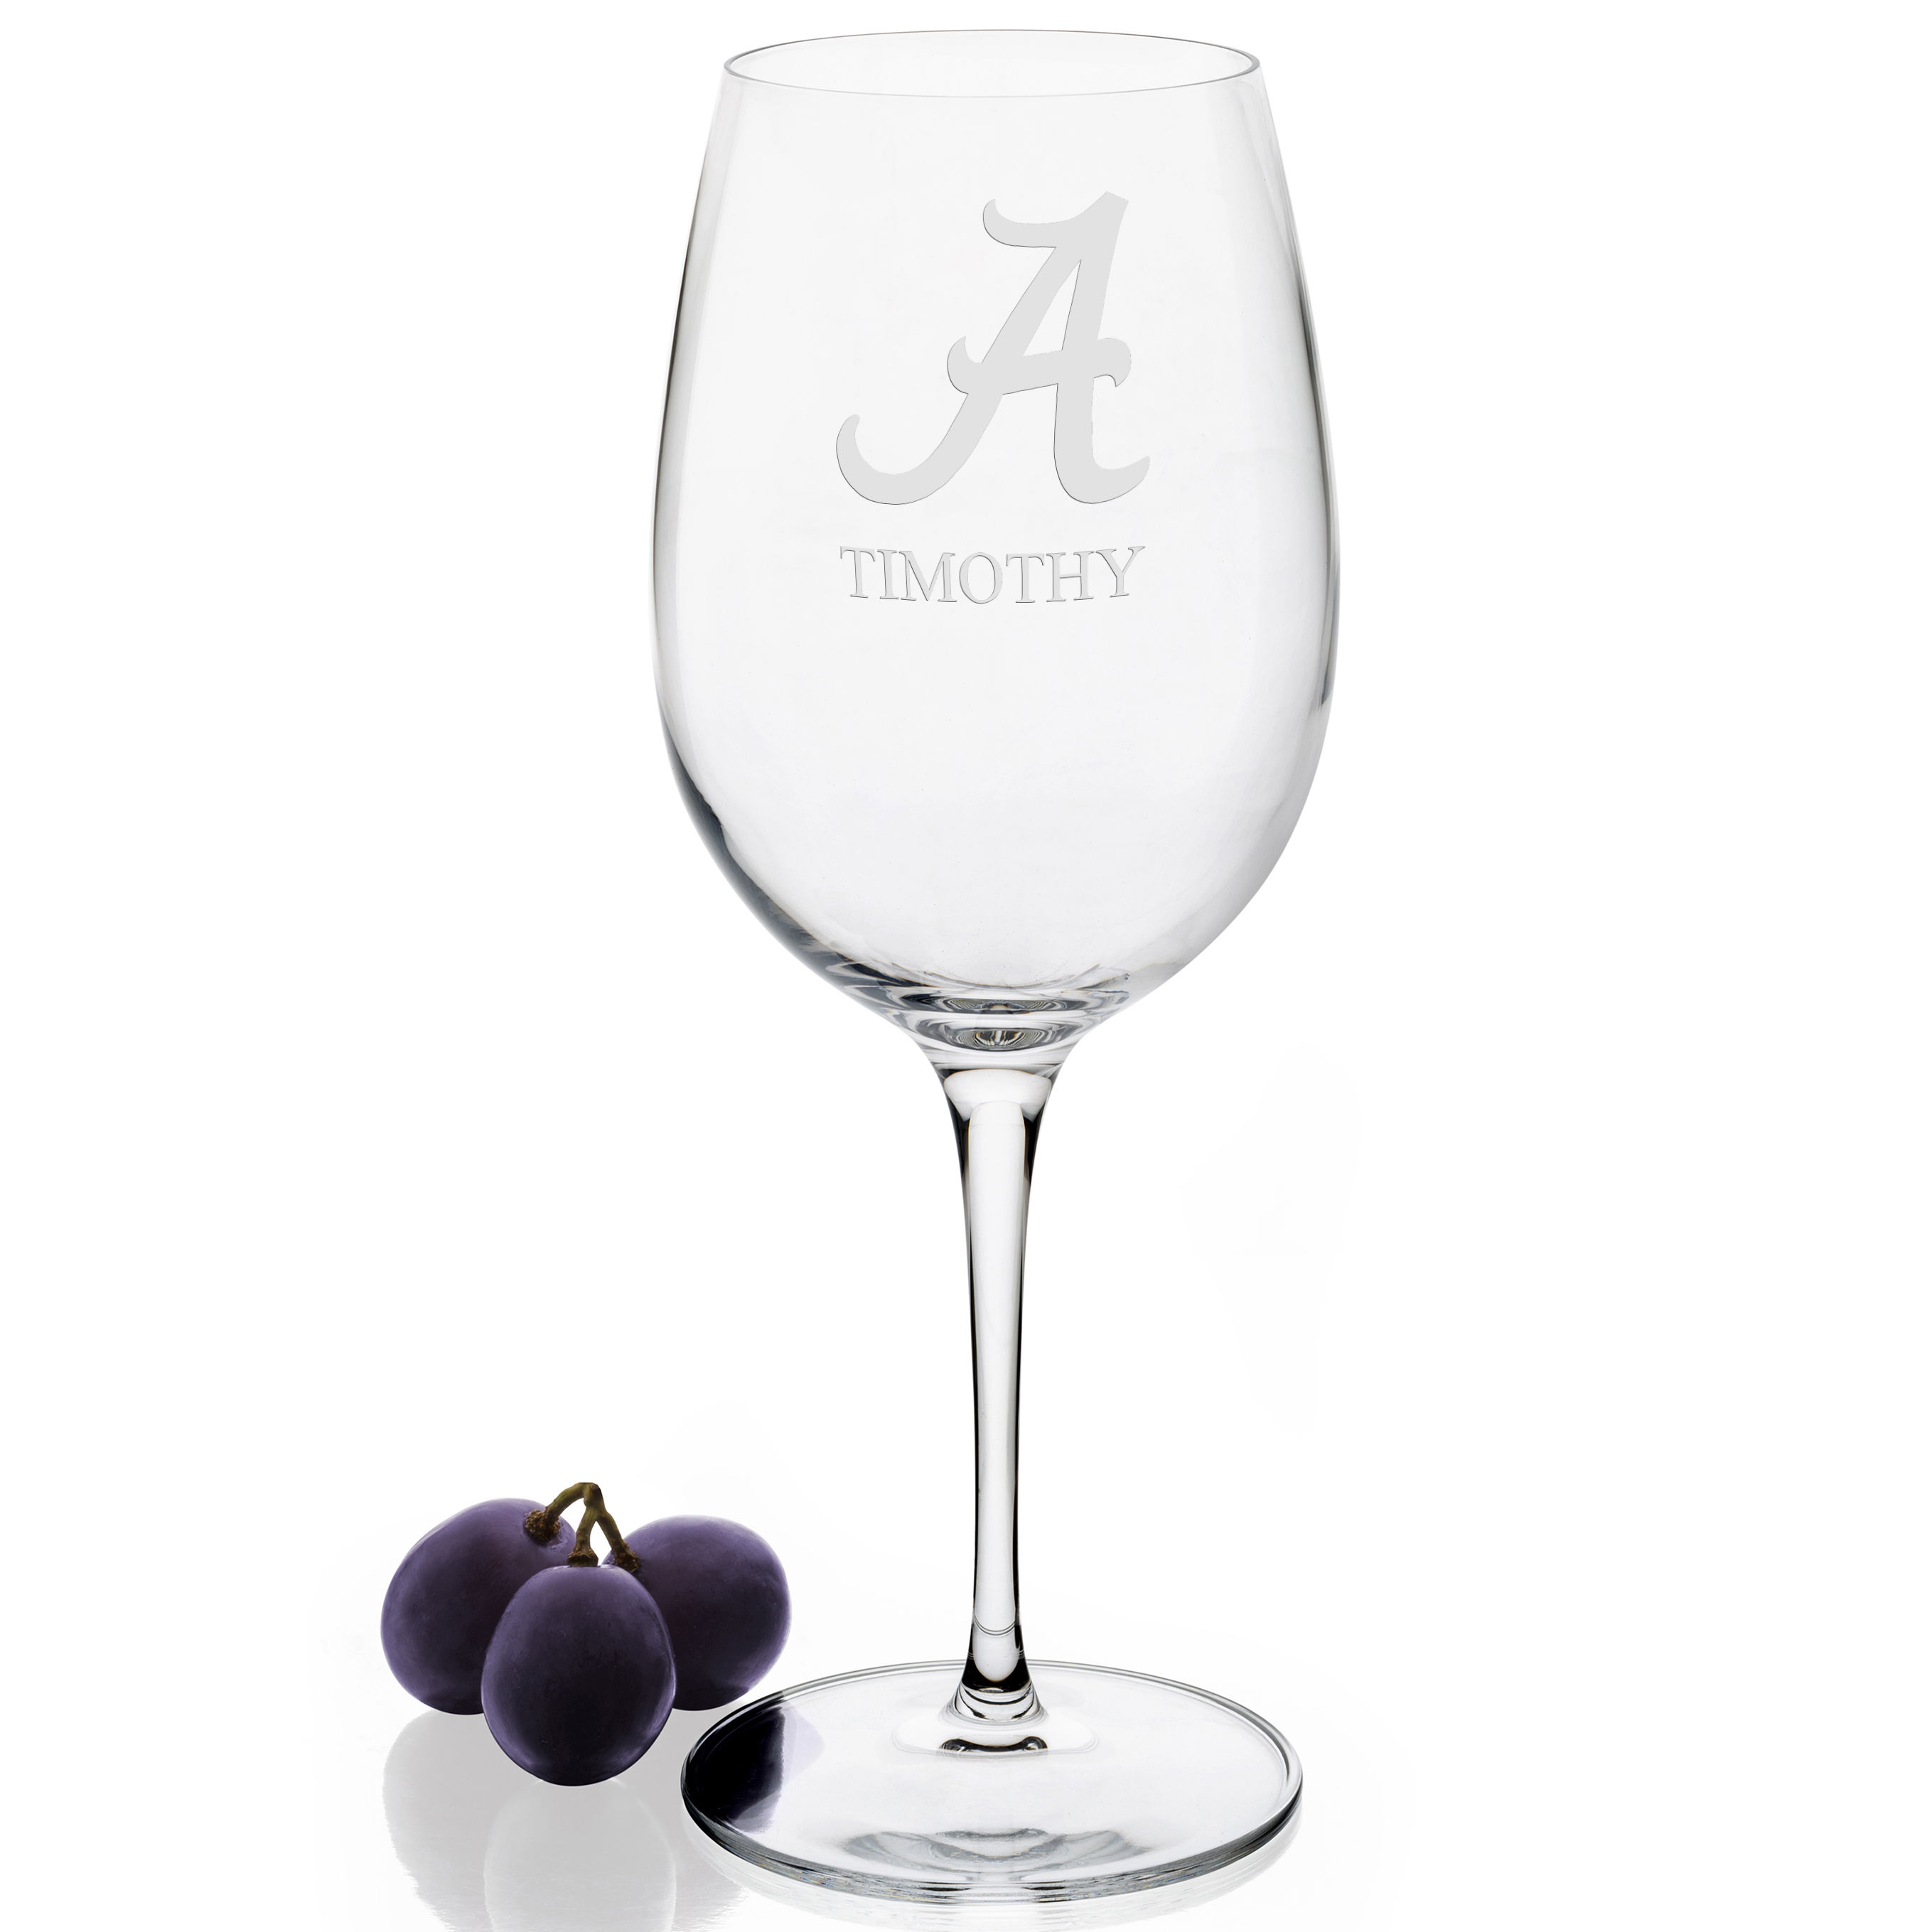 Alabama Red Wine Glasses - Set of 2